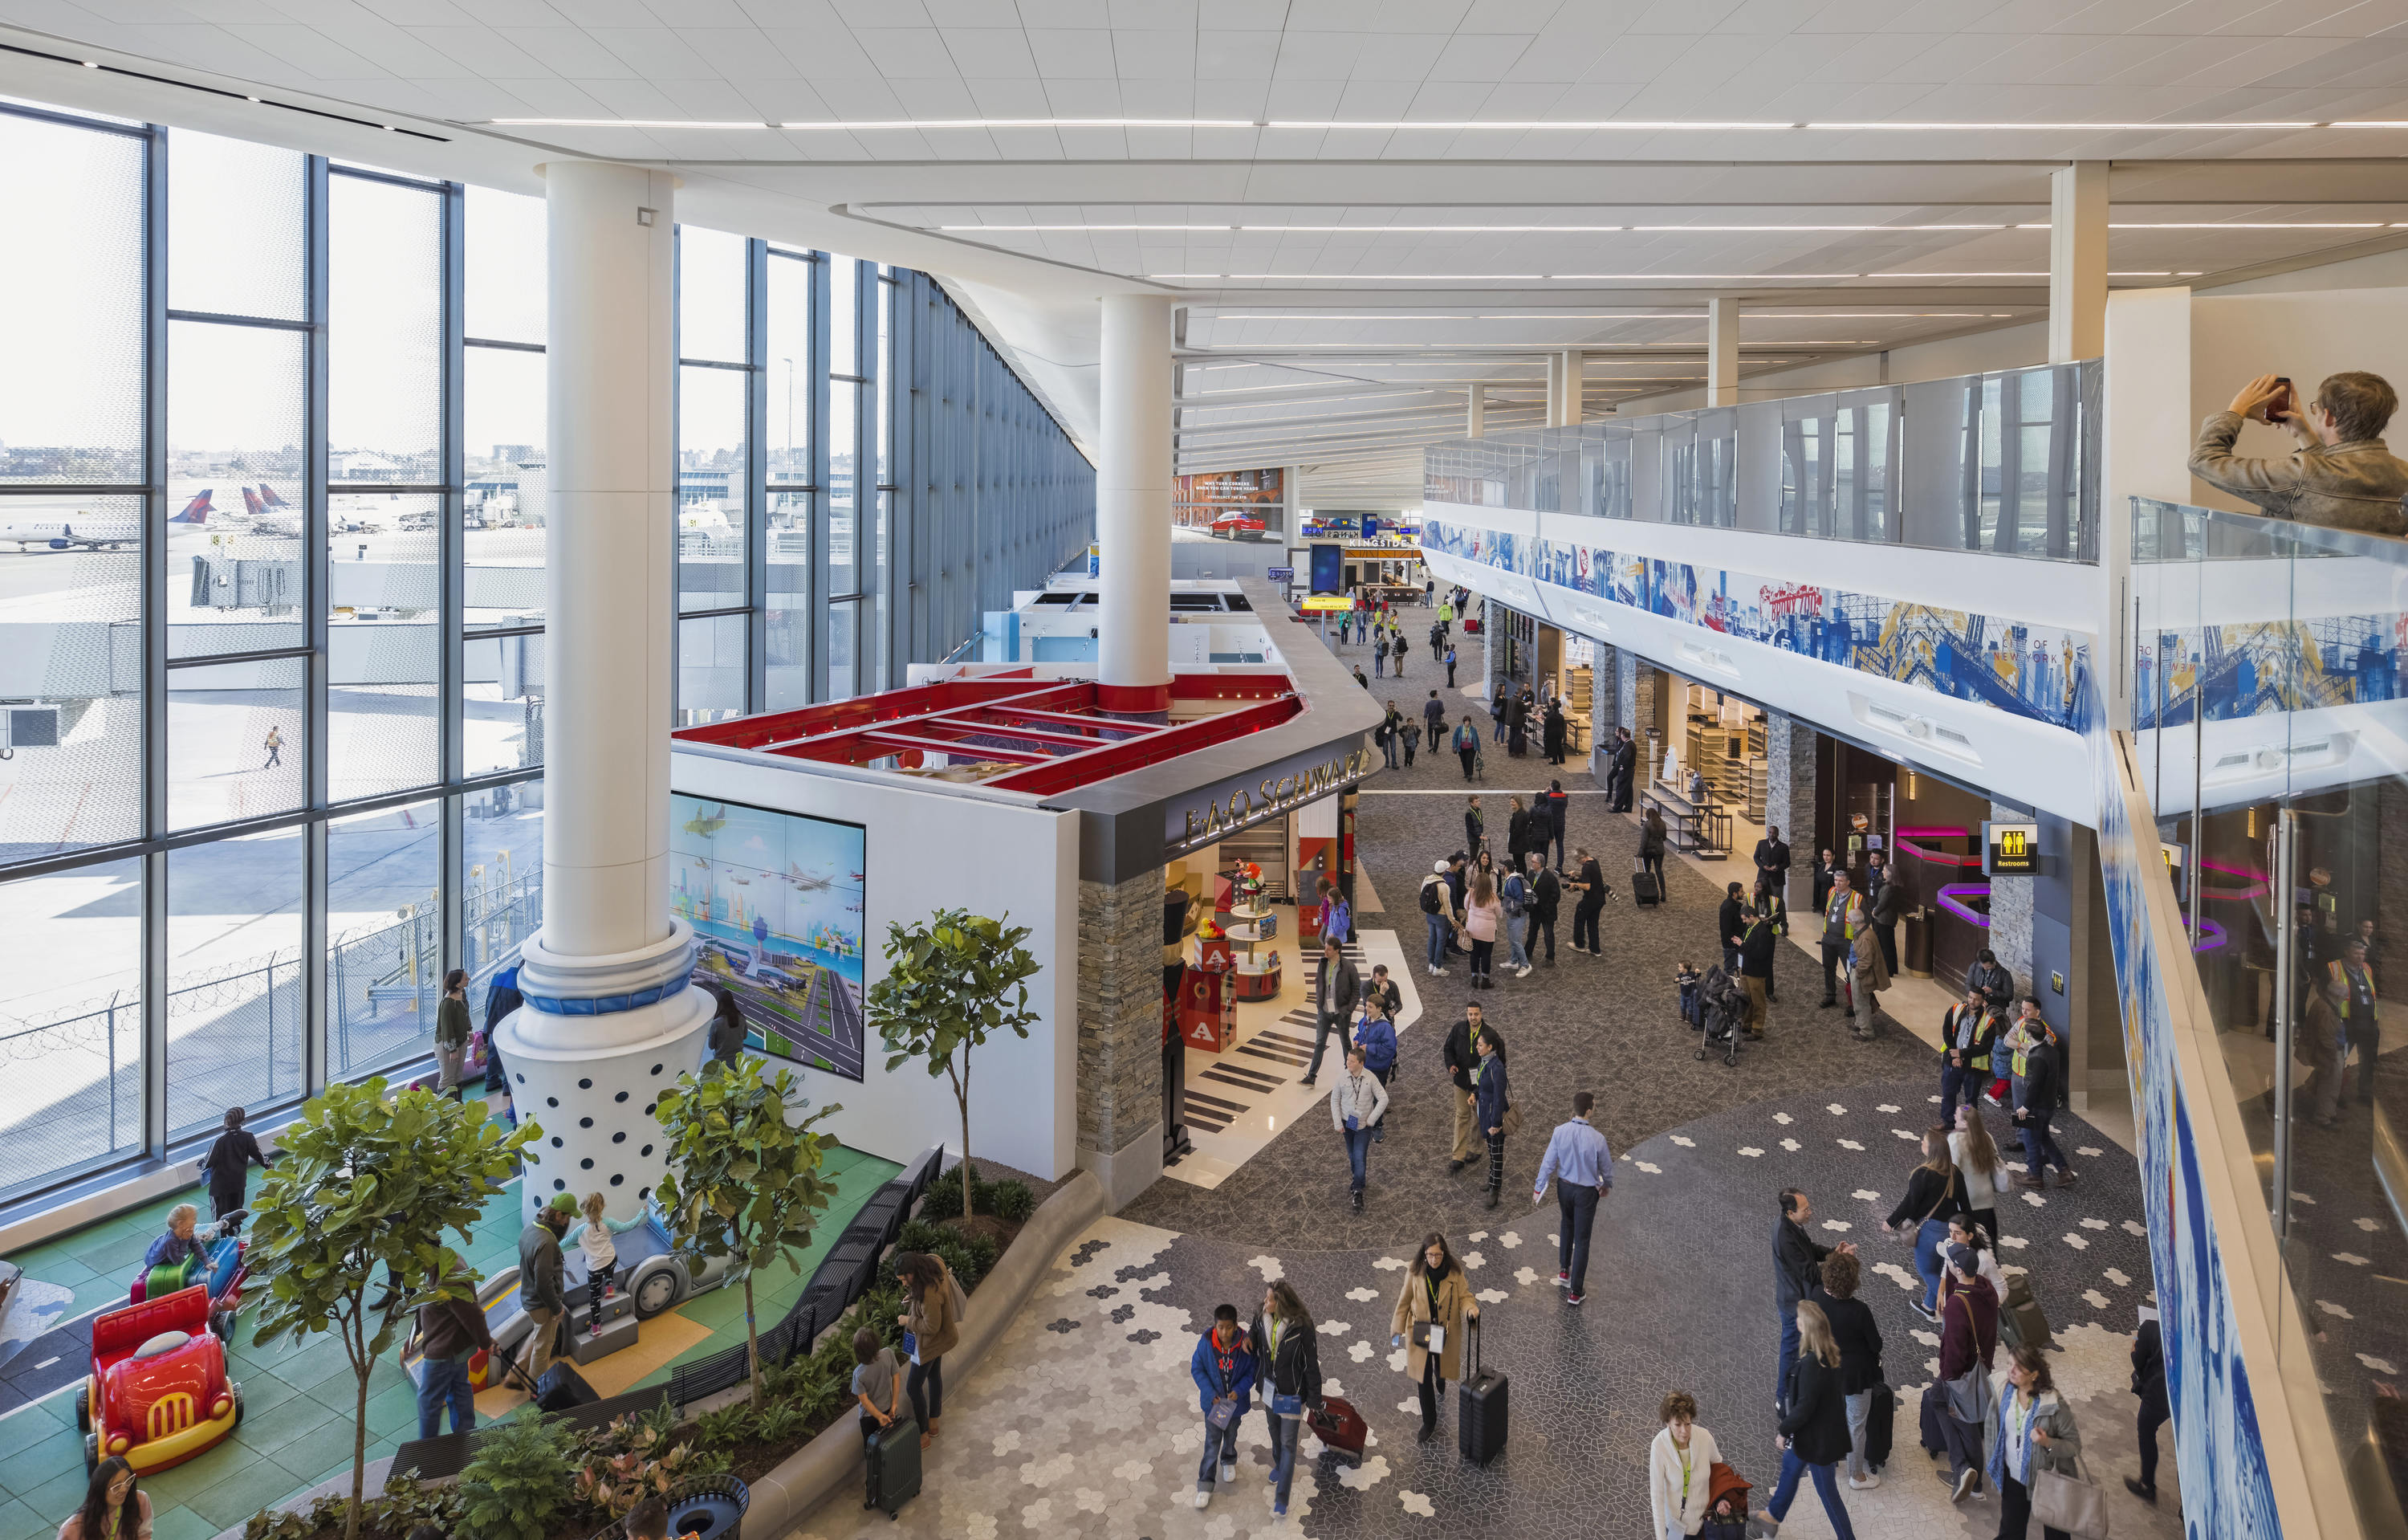 Works by internationally renowned artists are coming to LaGuardia Airport's Terminal B